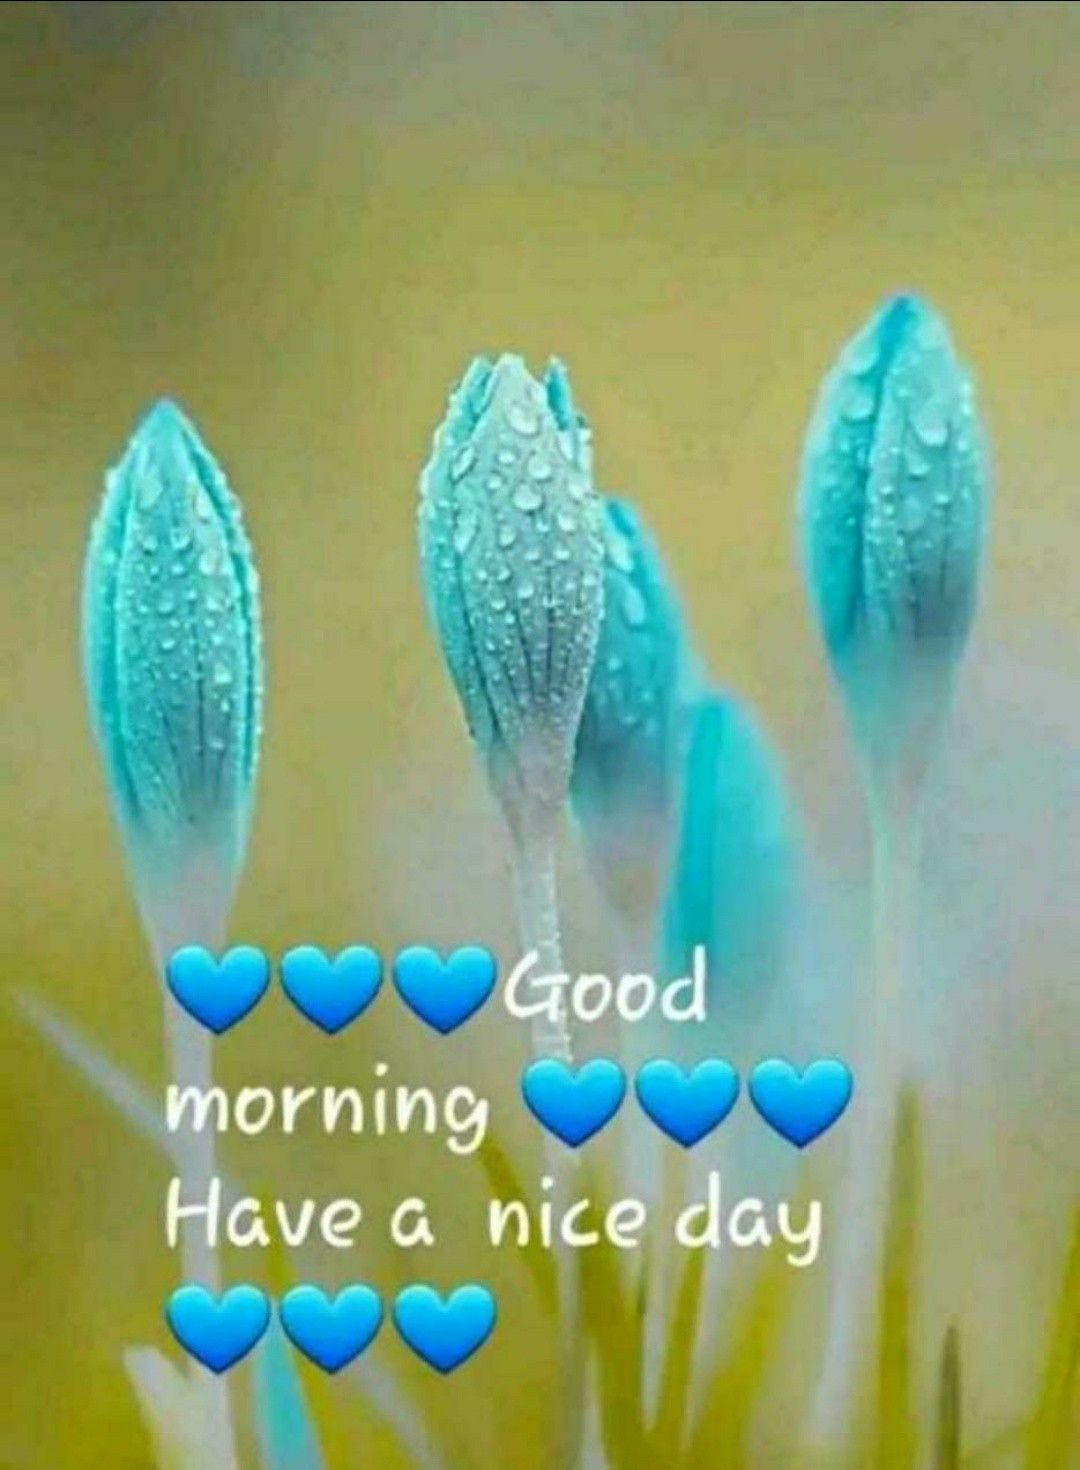 Pin By Scorpio Roy On Good Morning 2 Good Morning Images Morning Images Nature